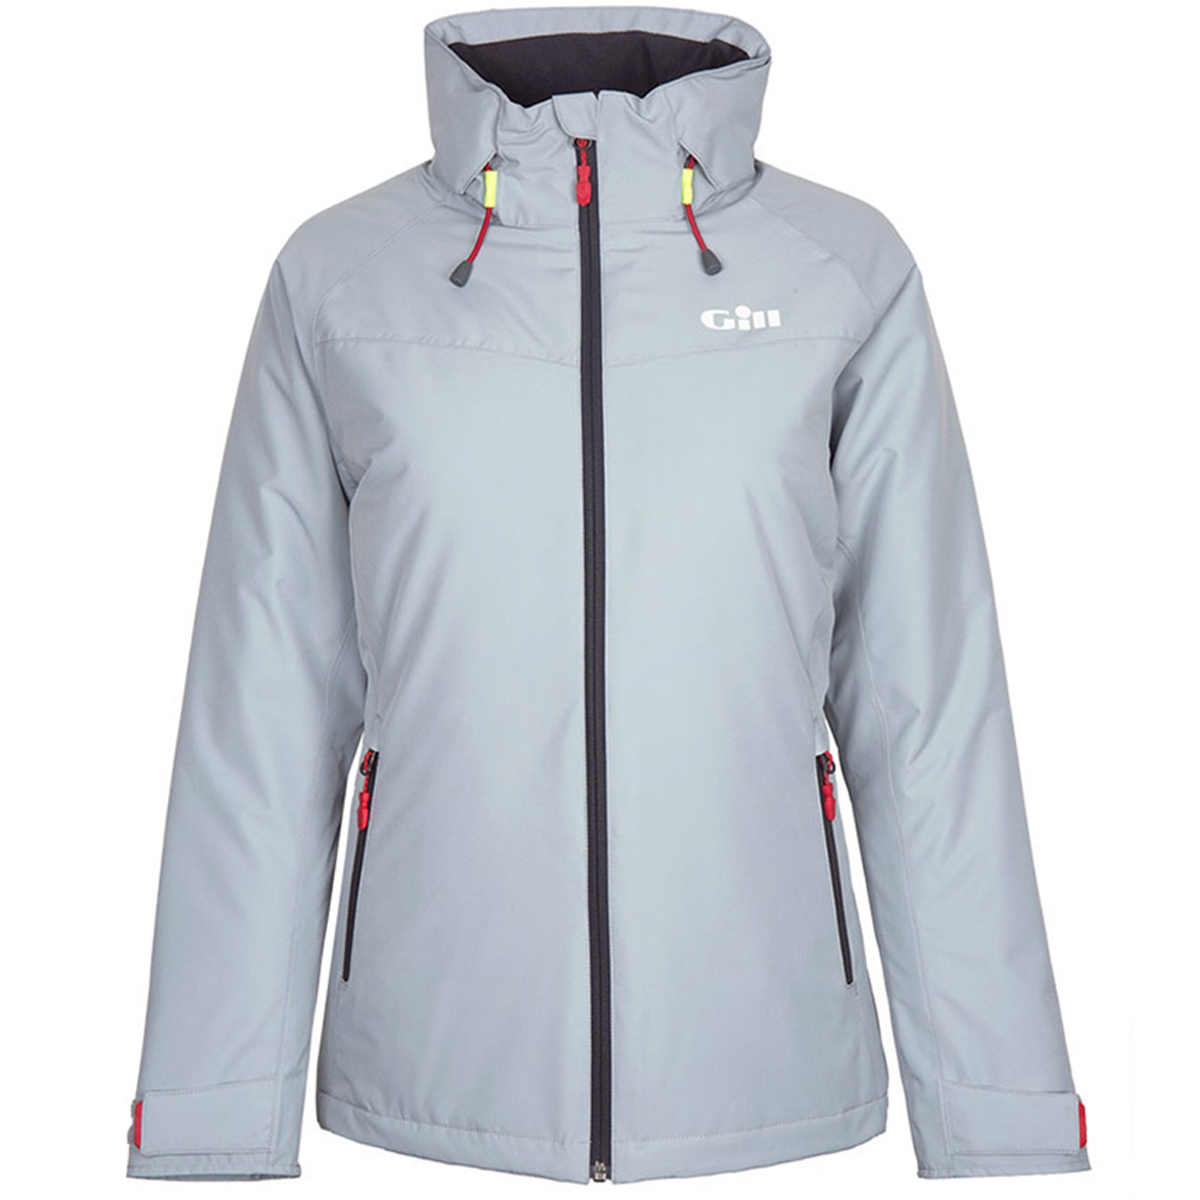 GILL WOMENS NAVIGATOR JACKET (IN83JW)